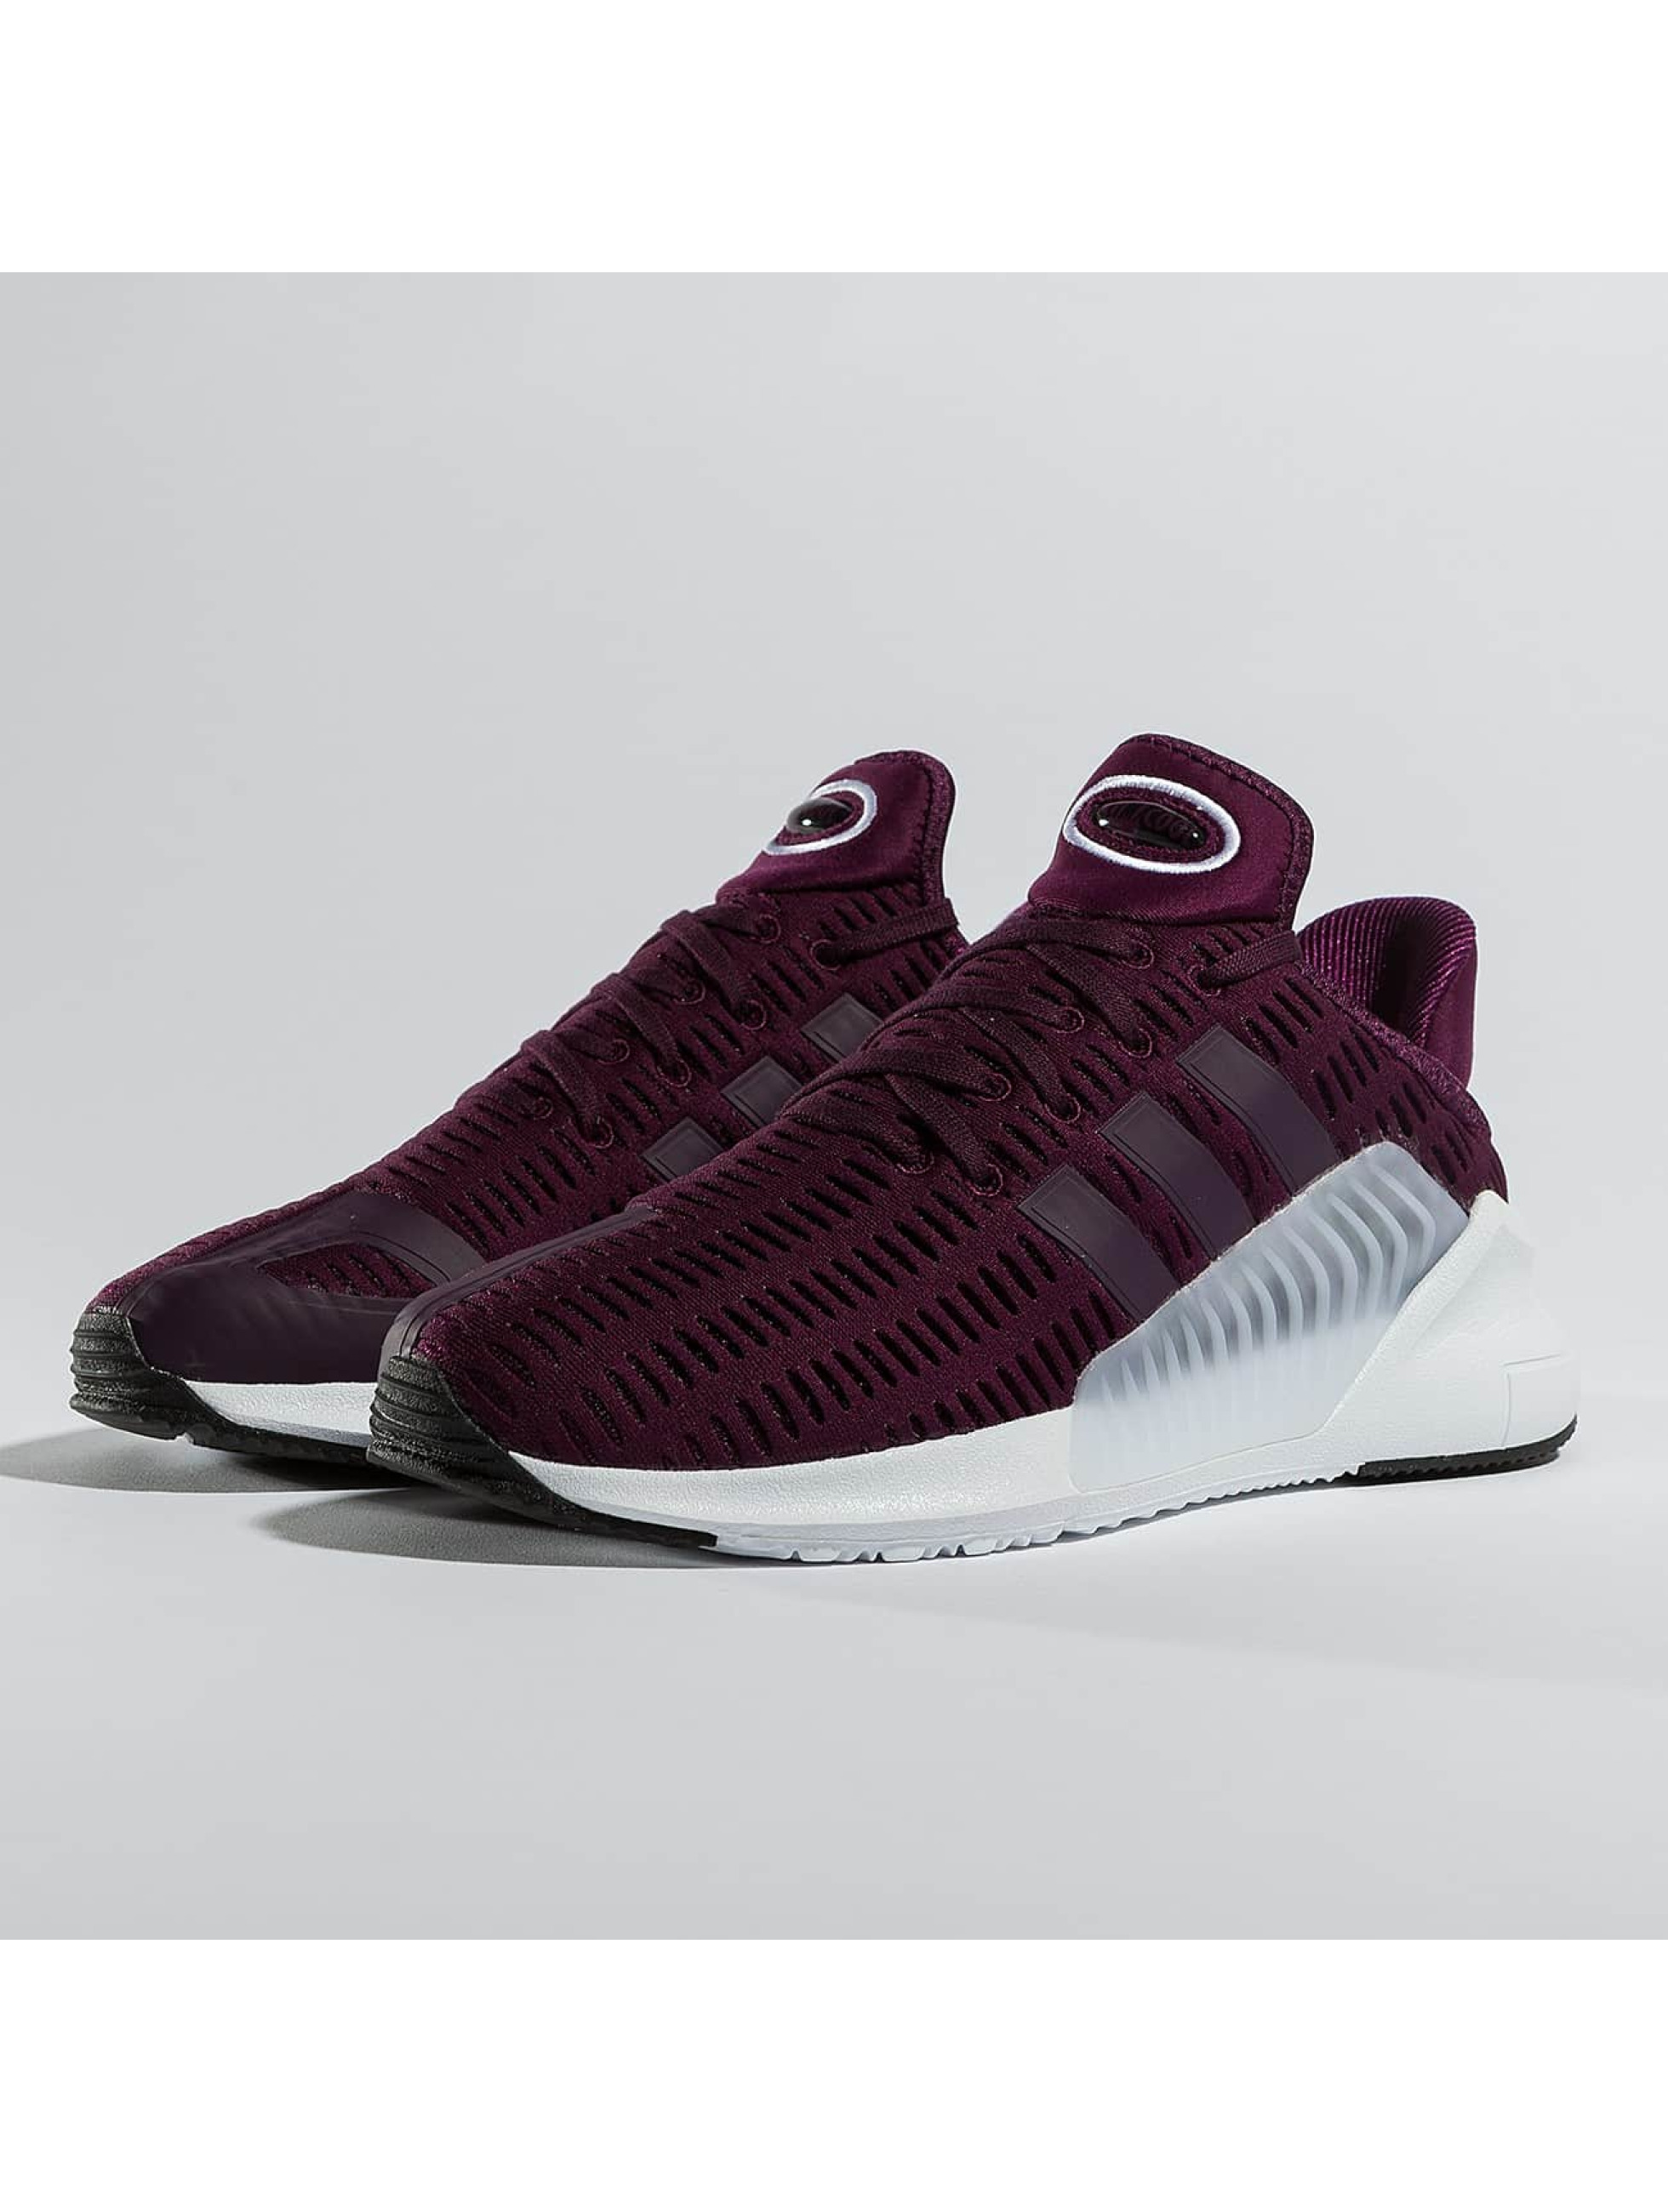 adidas Sneakers Climacool 02/17 red